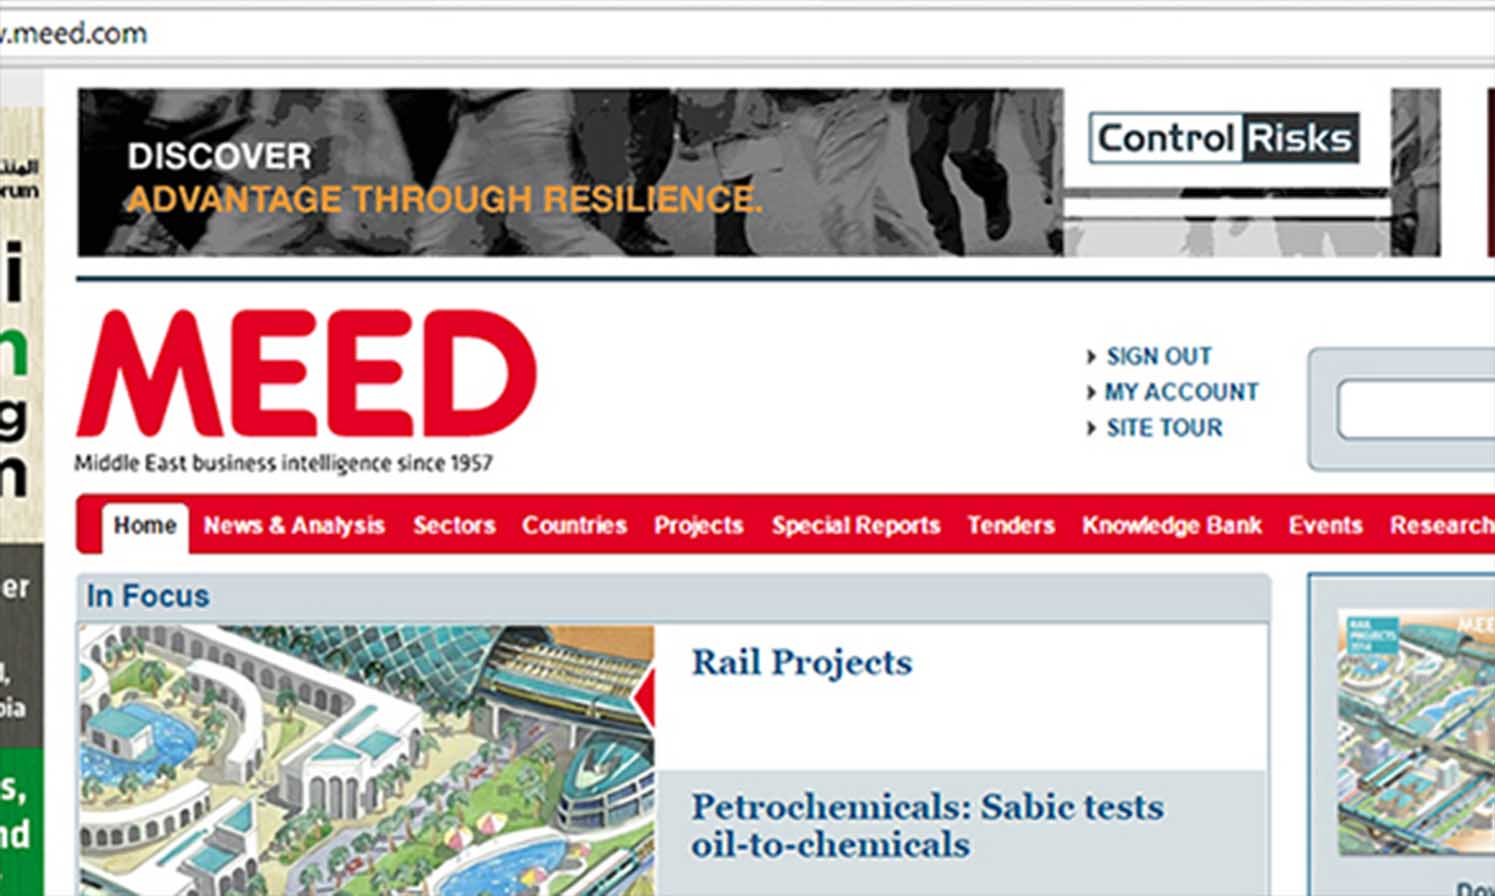 Control Risks - image of resilience campaign published on meed website